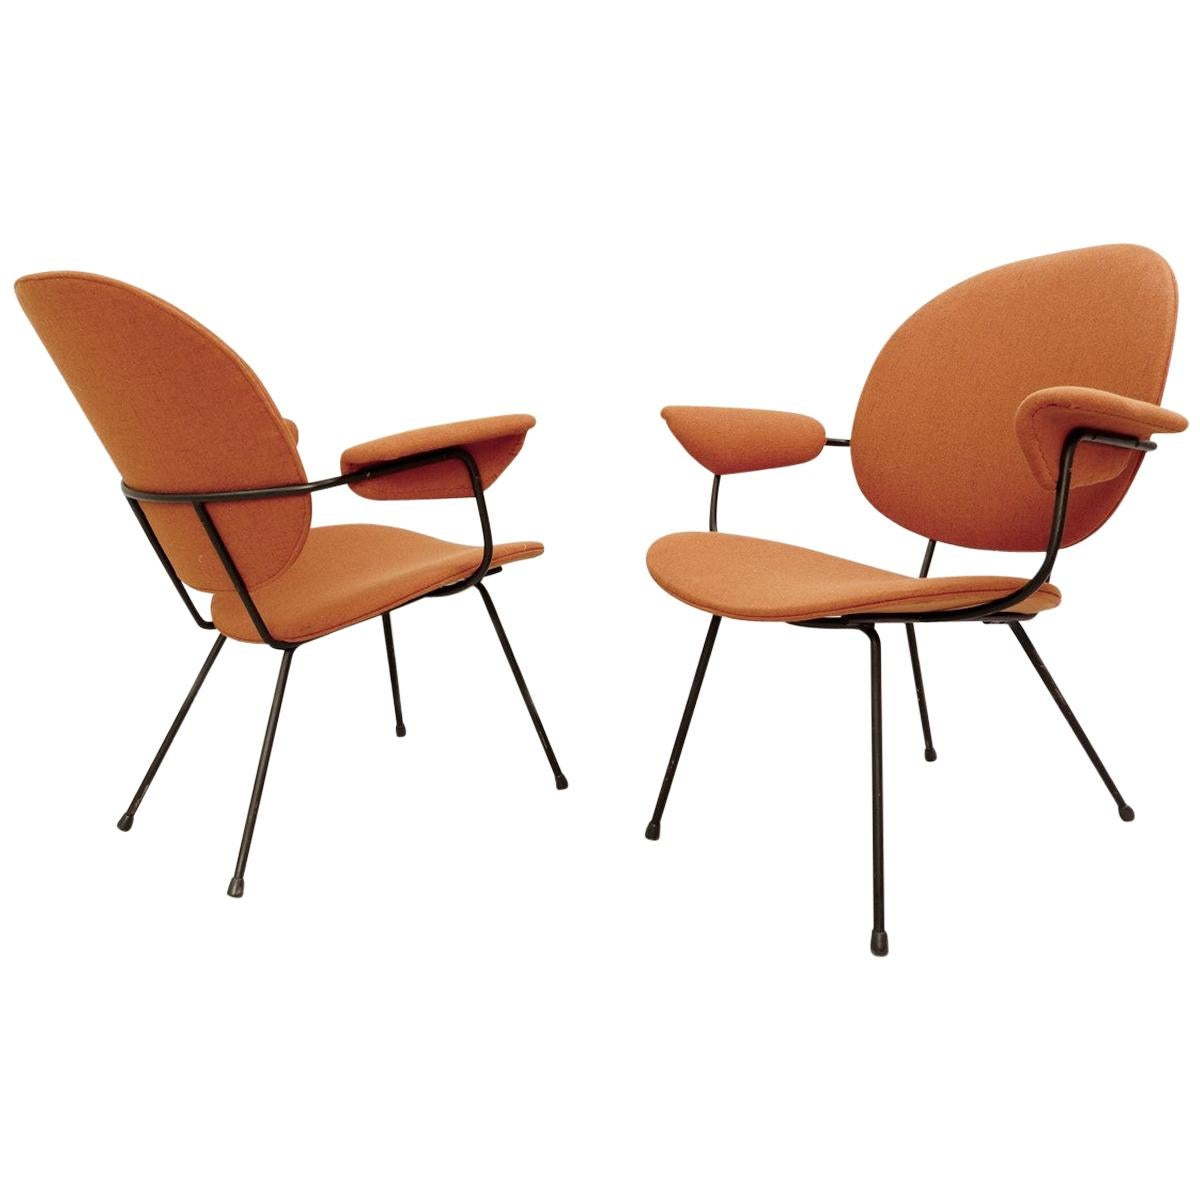 302 Armchairs by Willem Hendrik Gispen for Kembo, 1950s